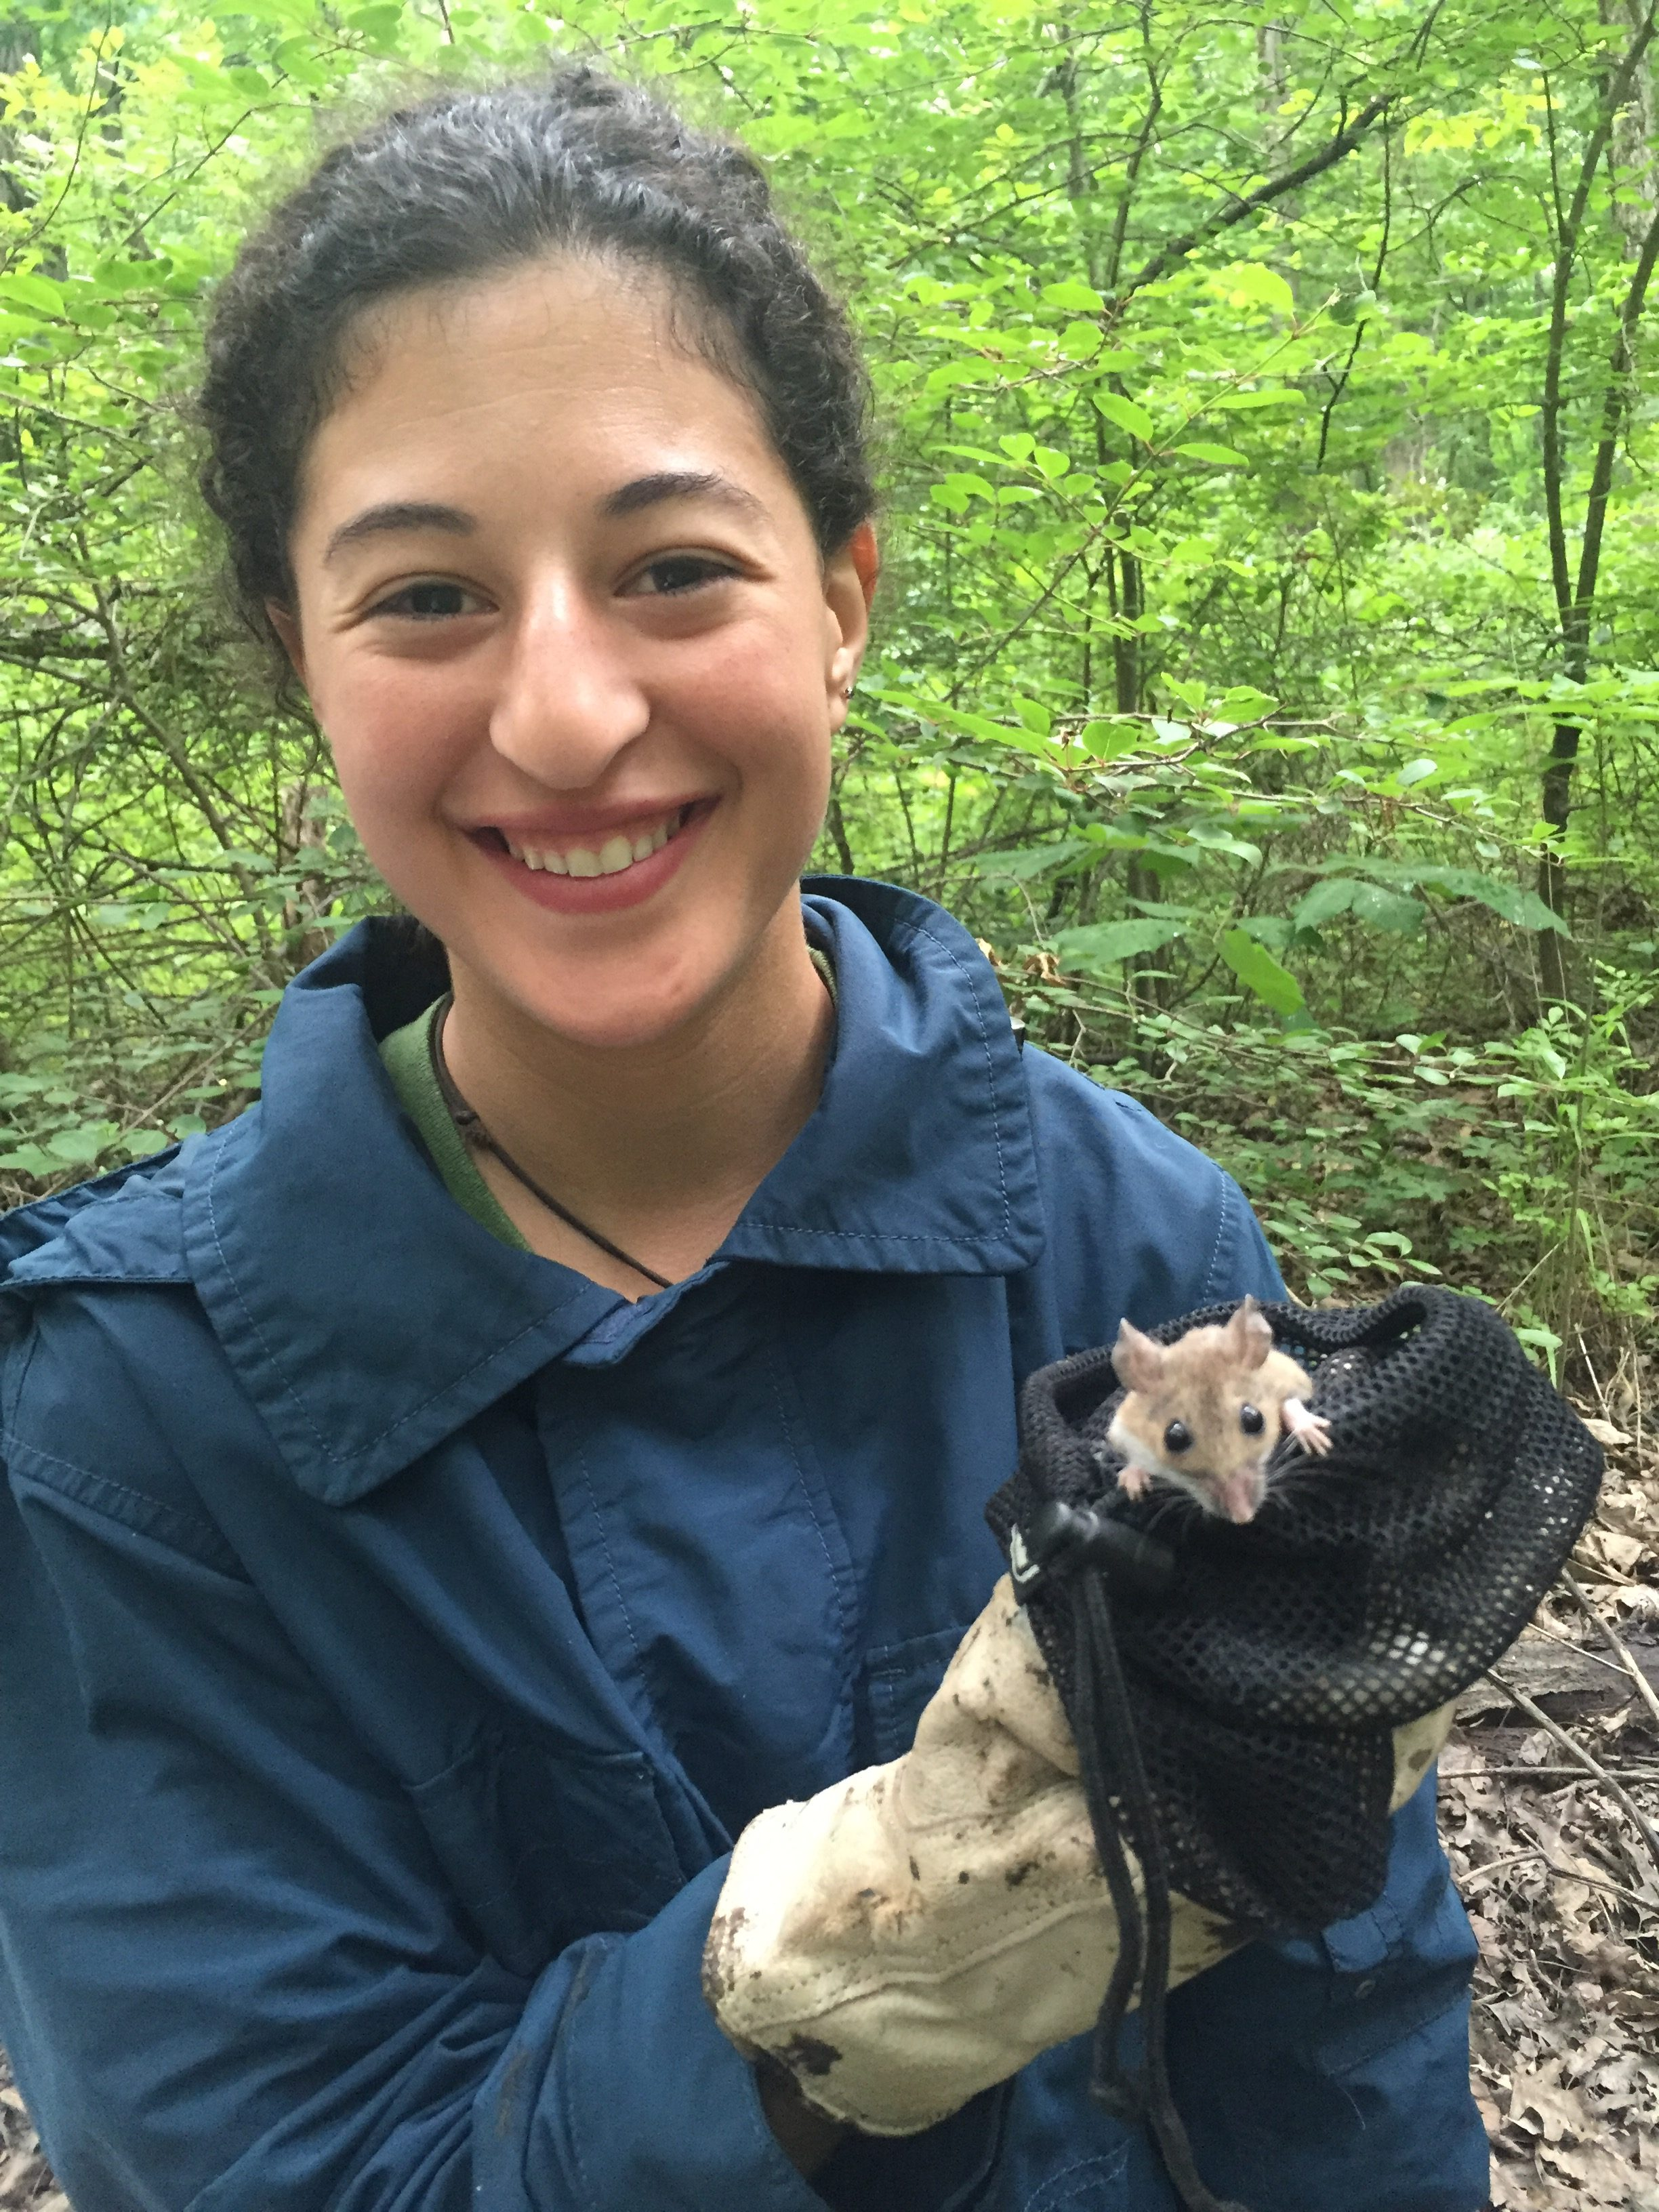 Graduate student Ilianna Anise conducting field work holding a mouse